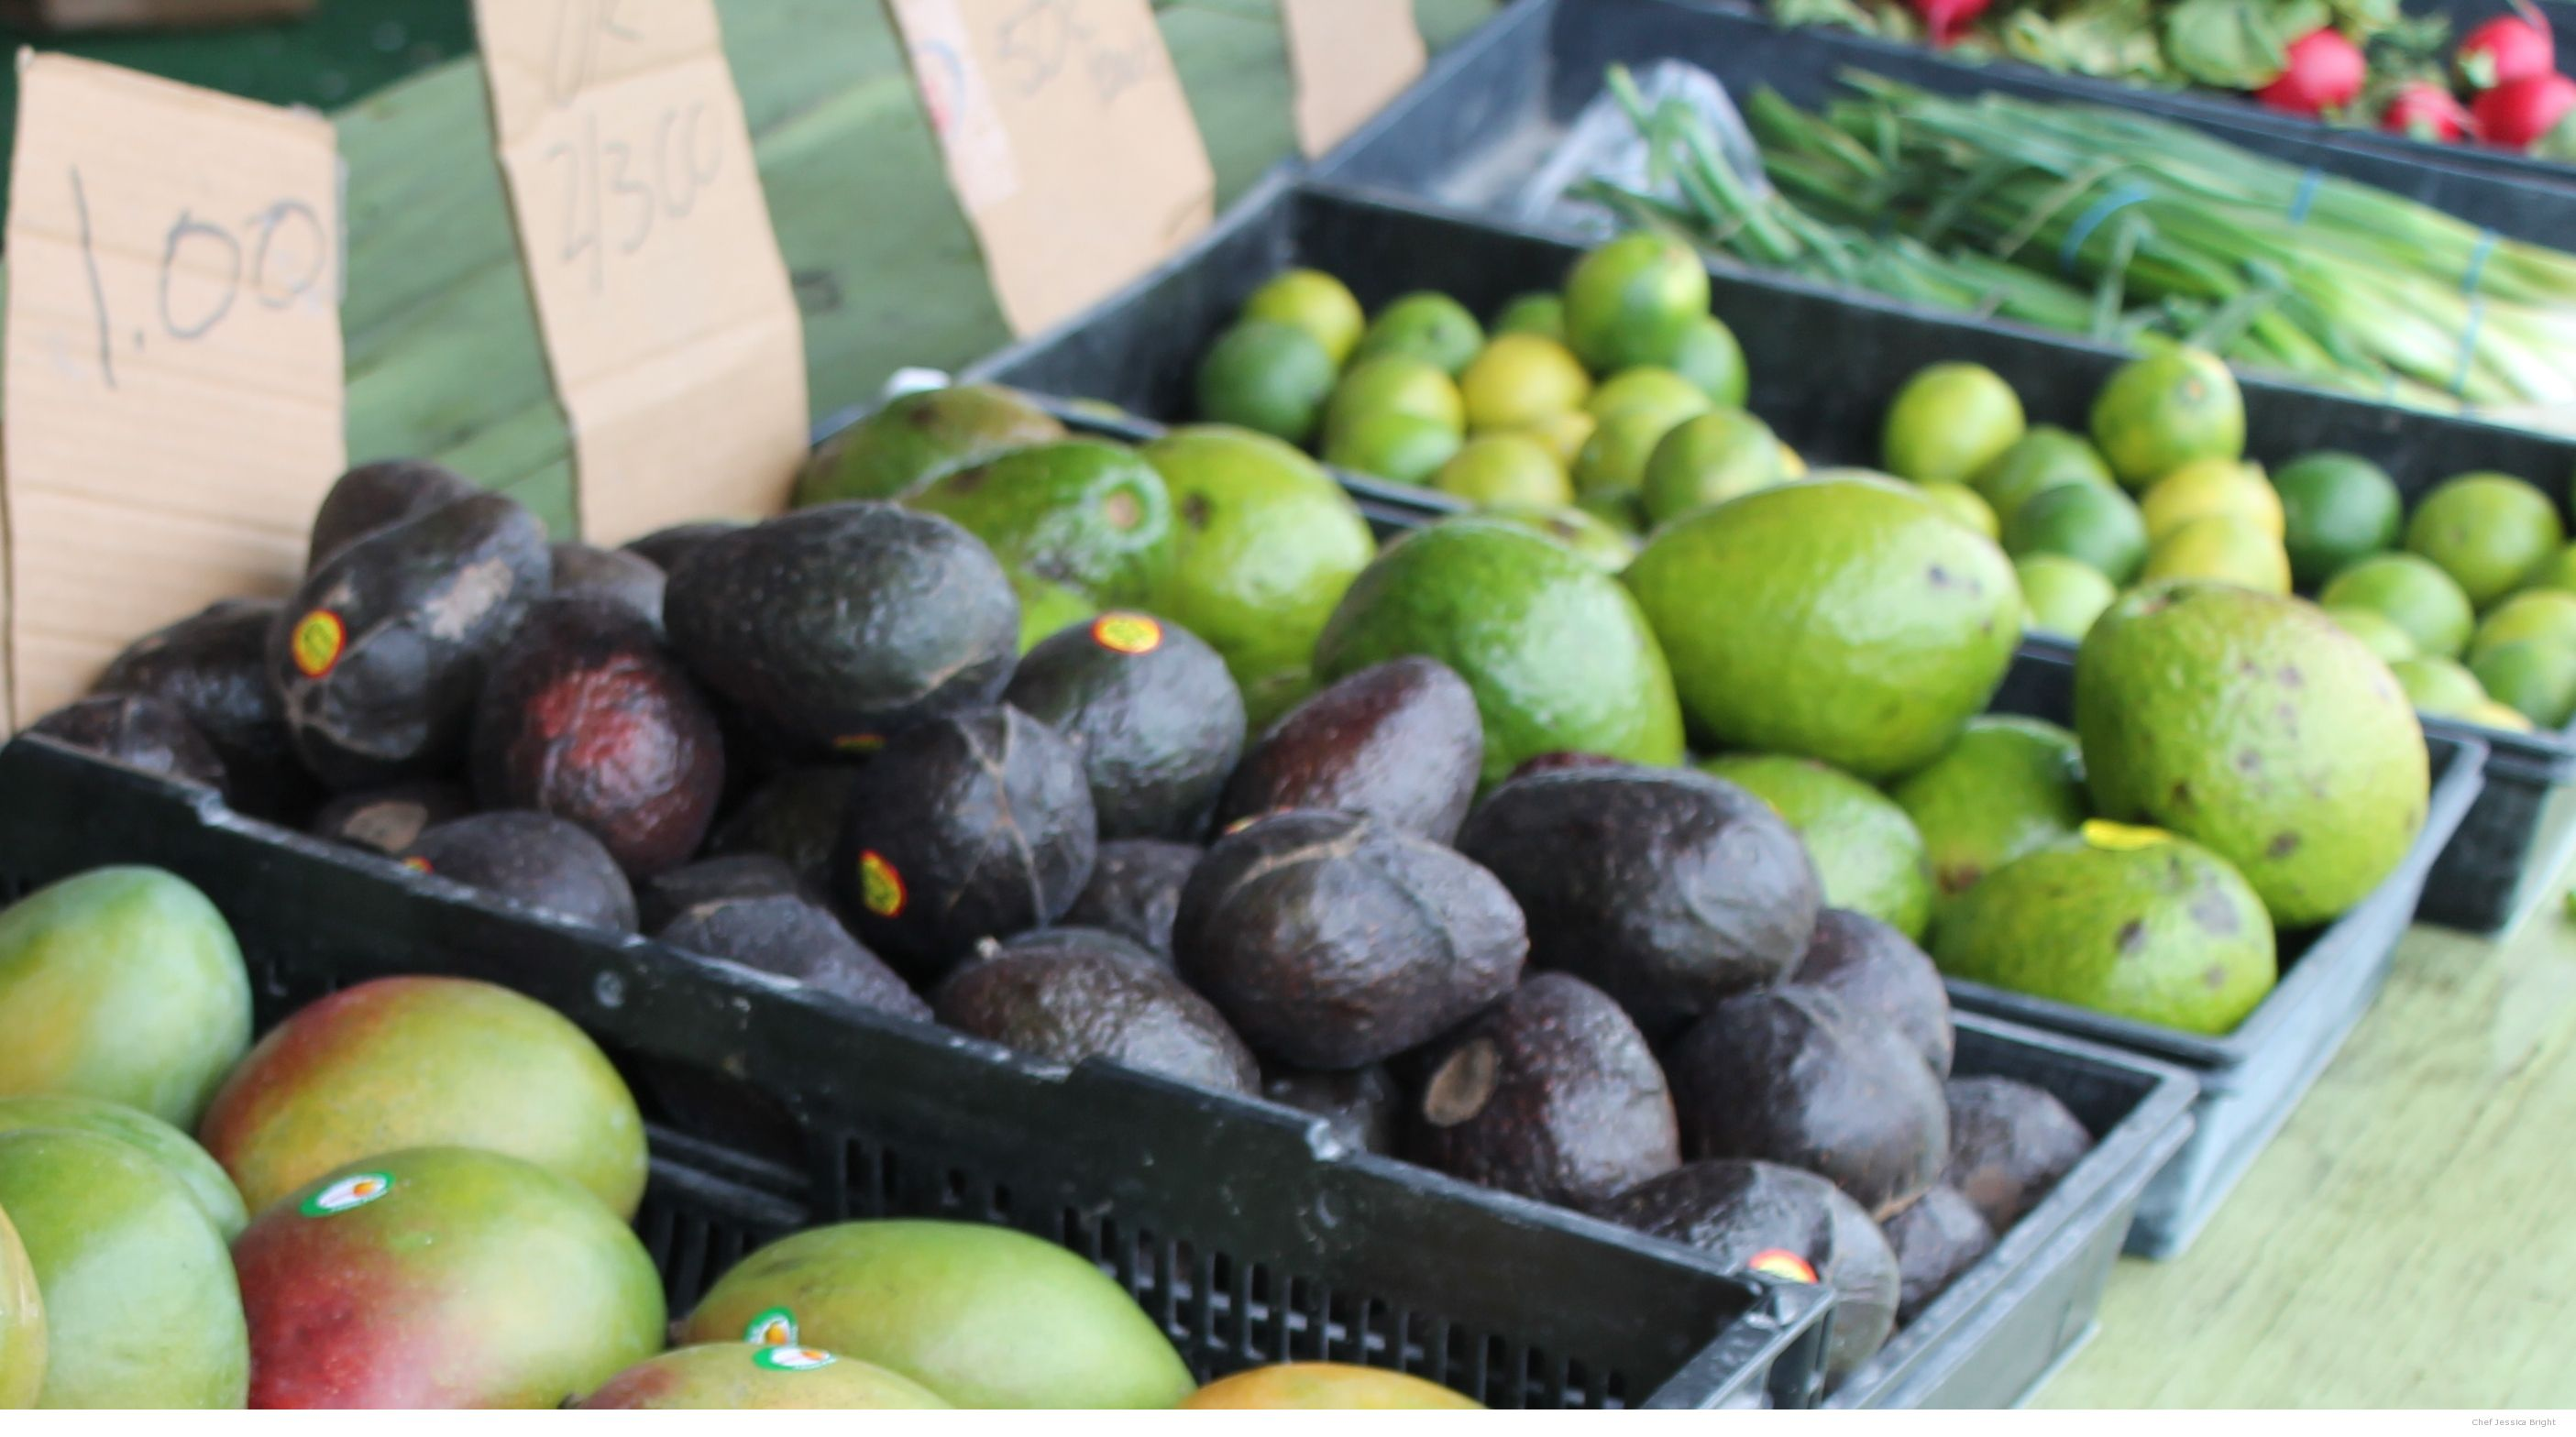 Mangos, Hass Avocados,   Slimcados and LImes at the Farmers Market